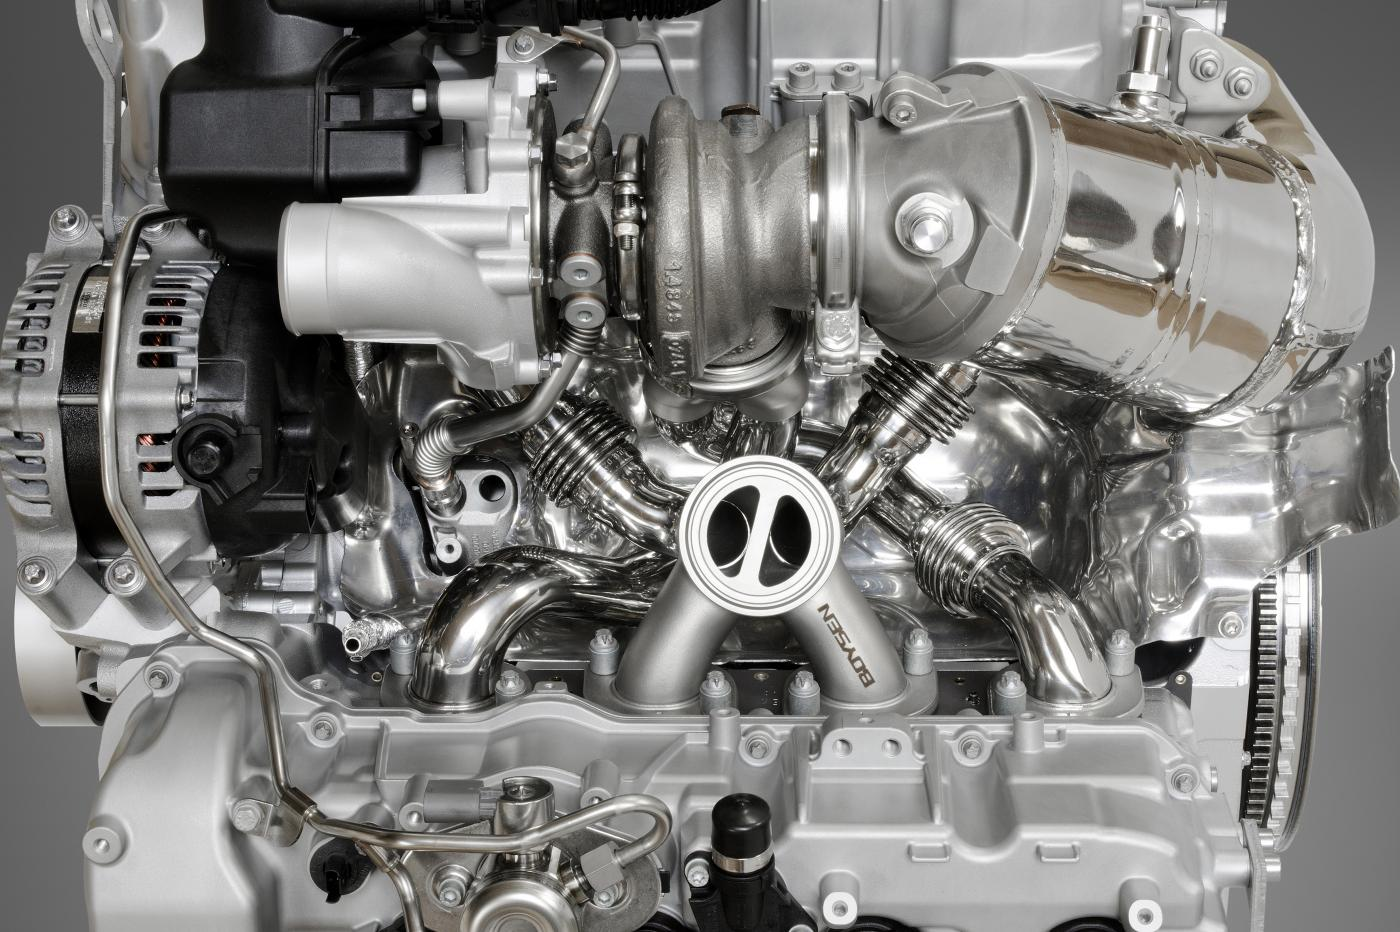 Bmw F10 M5 S63tu Engine Components Explained Iaa By Junior E36 Bay Diagram Full Attached Images